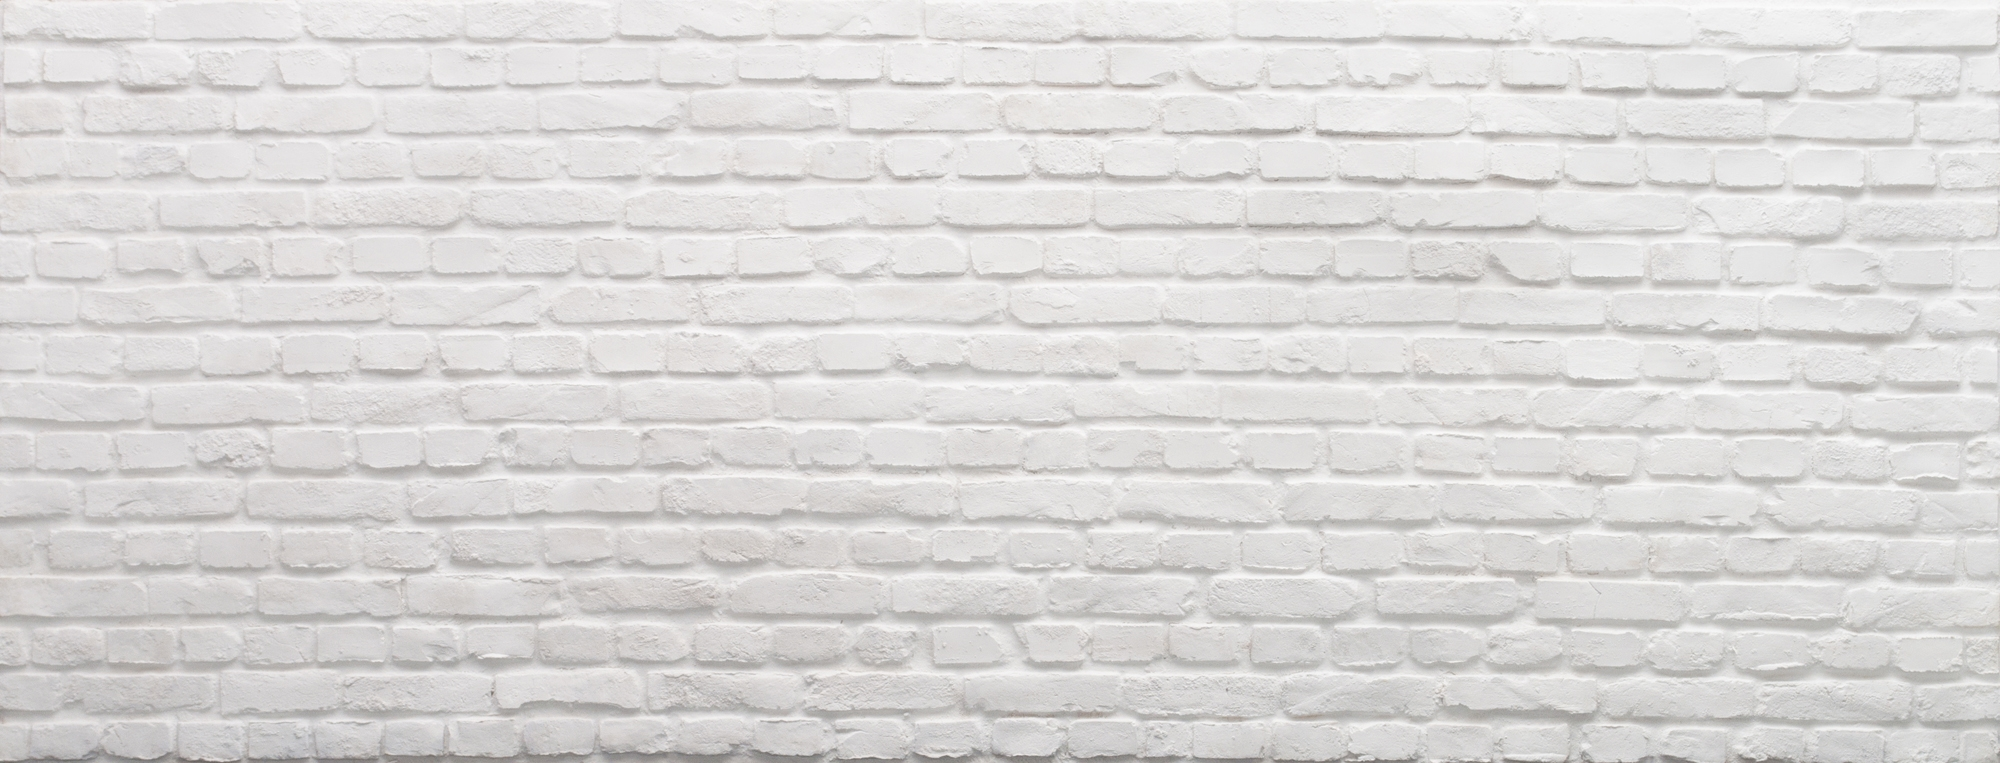 White Brick Wall Texture Kitchen Septic Tanks The National